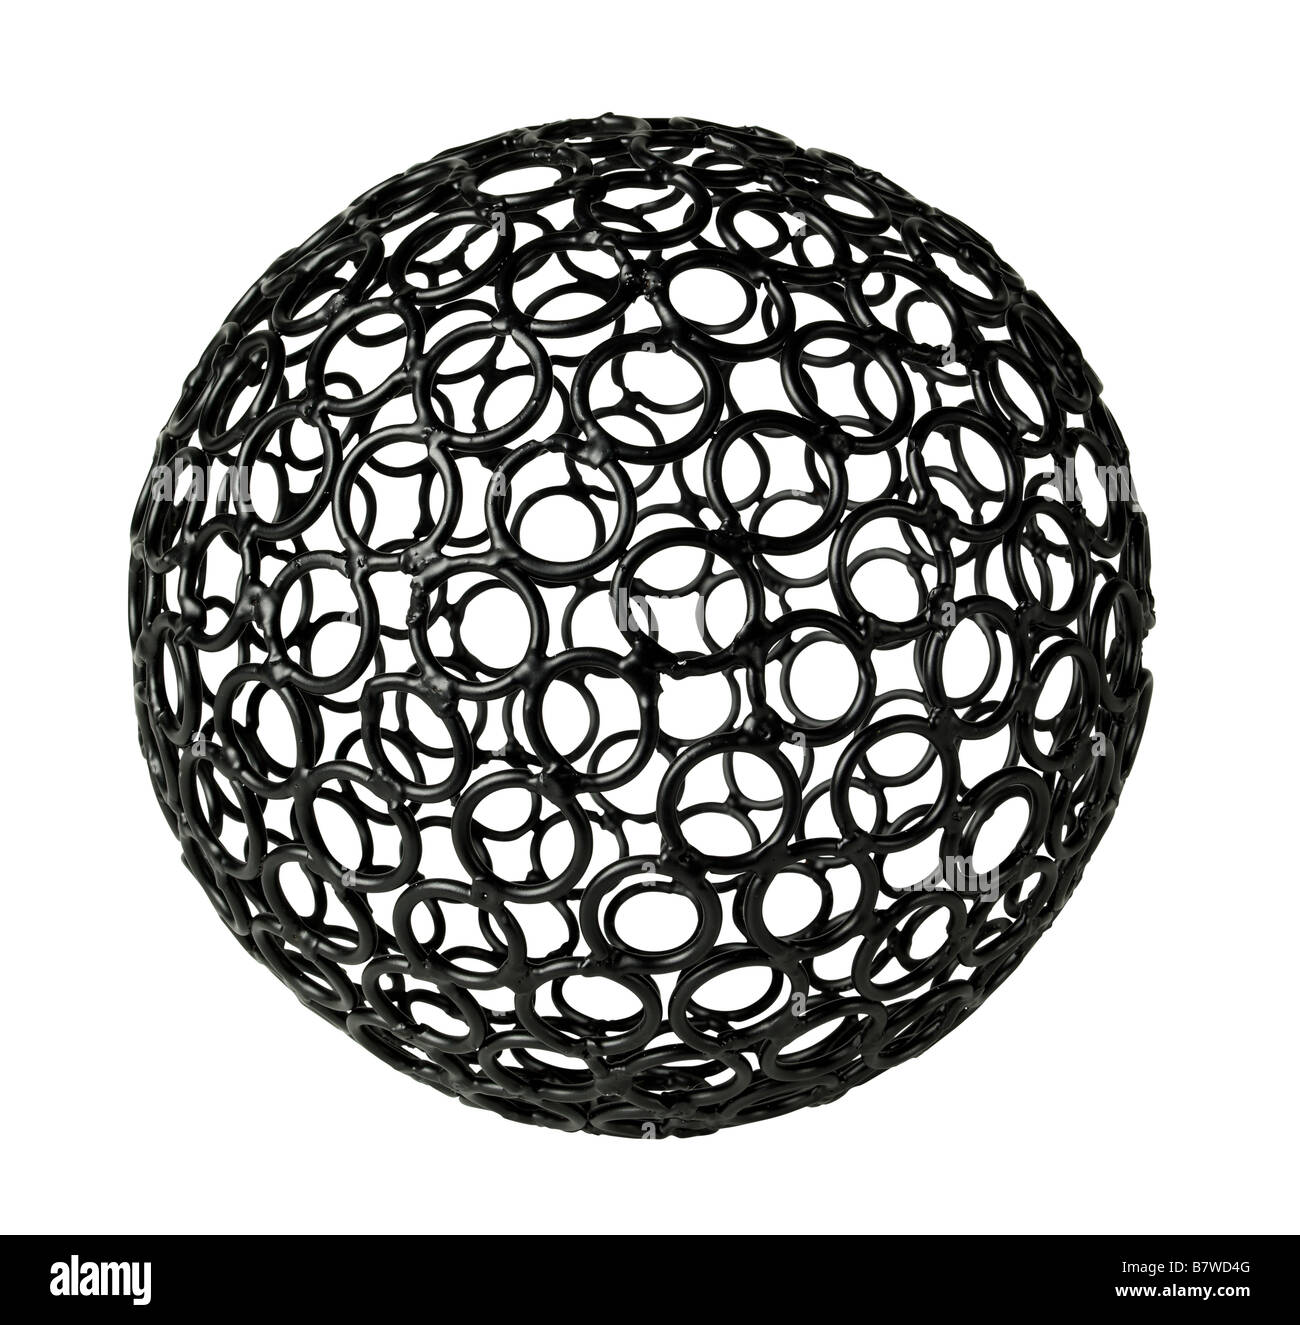 Sphere Shapes Stock Photos & Sphere Shapes Stock Images - Alamy